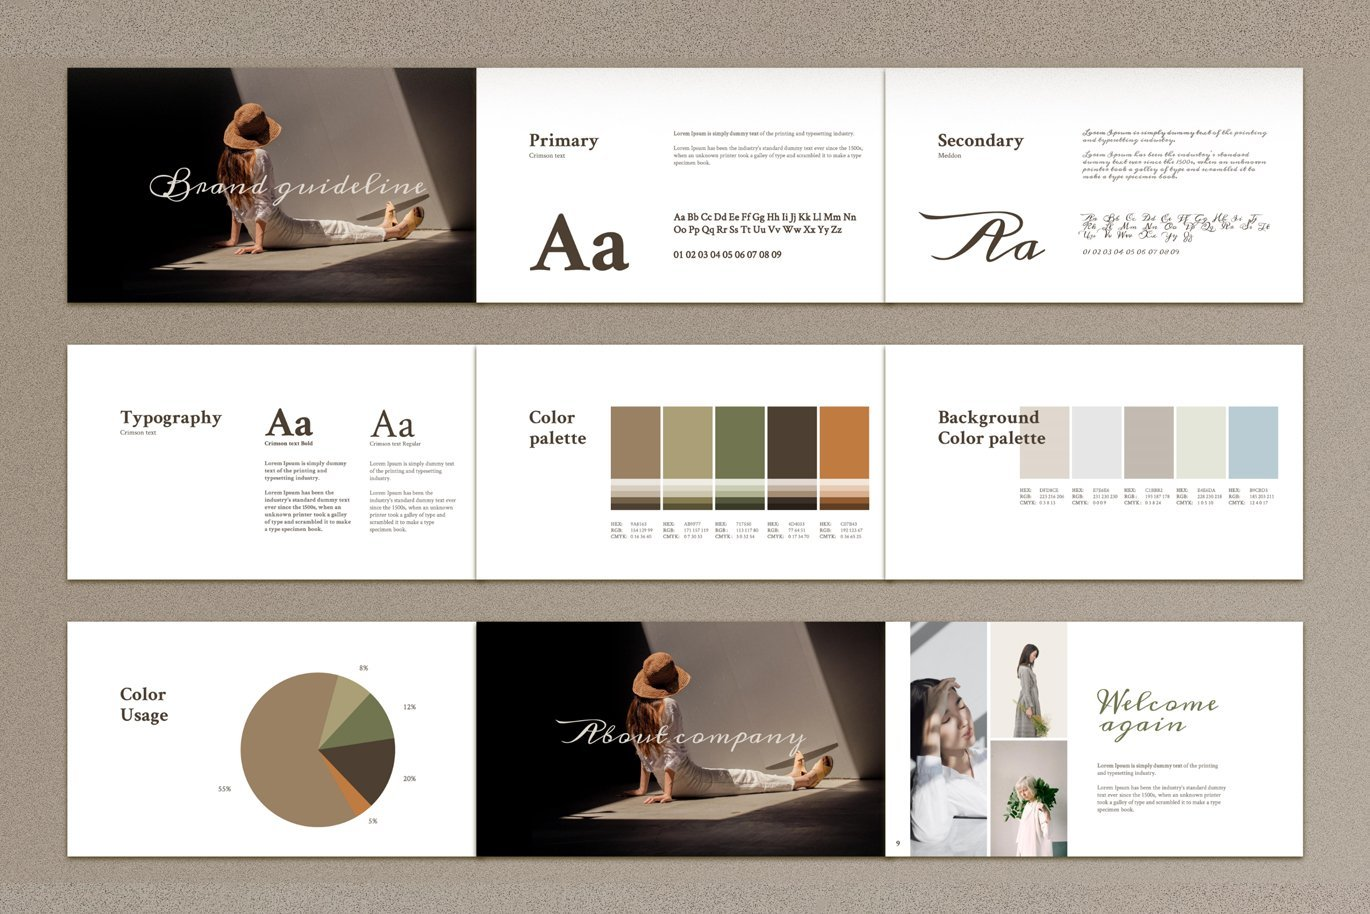 Unusual style and pastel colors will make your presentation unique.